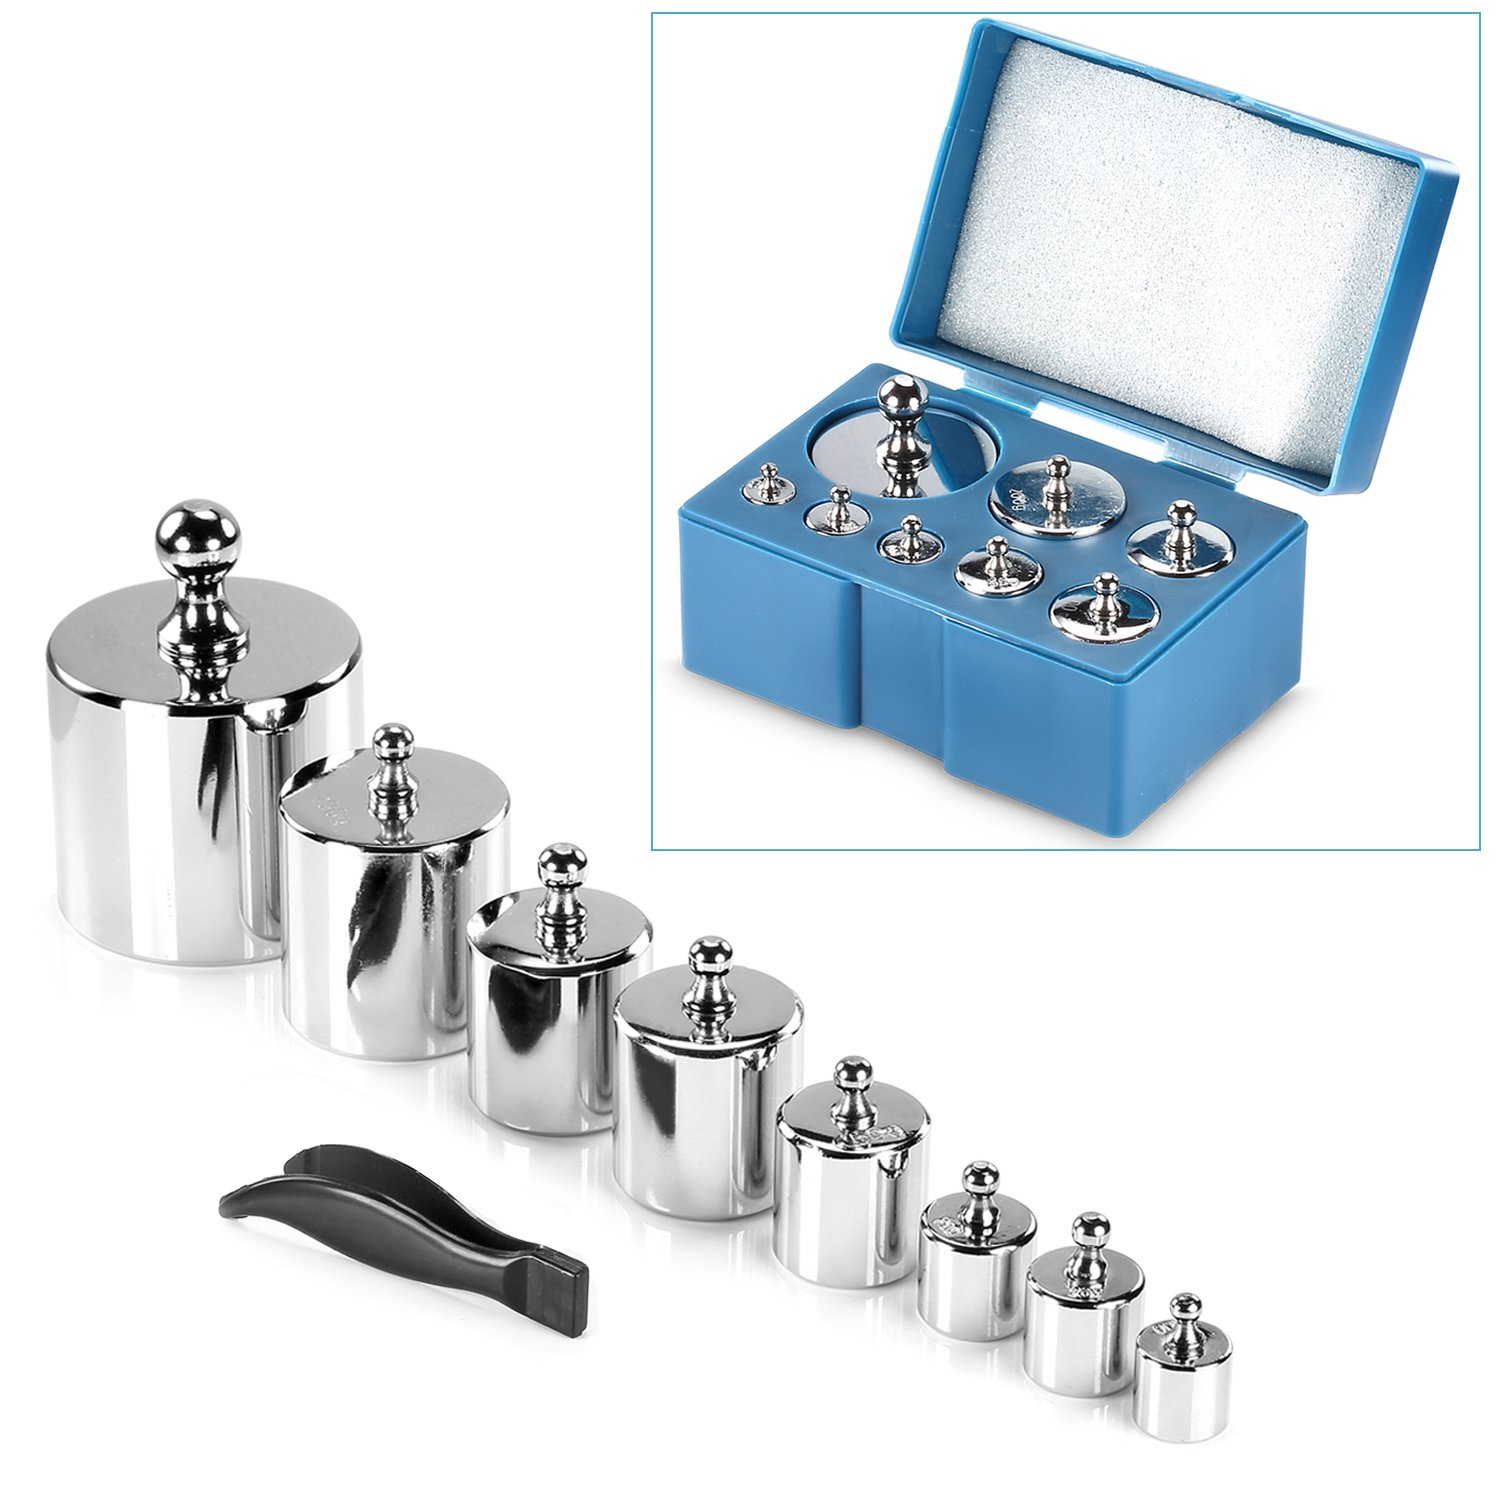 Neewer 8 Pieces 1000 Gram Stainless Steel Calibration Weight Set with Case and Tweezers for Digital Jewellery Scale Science Lab Weights Educational by Neewer